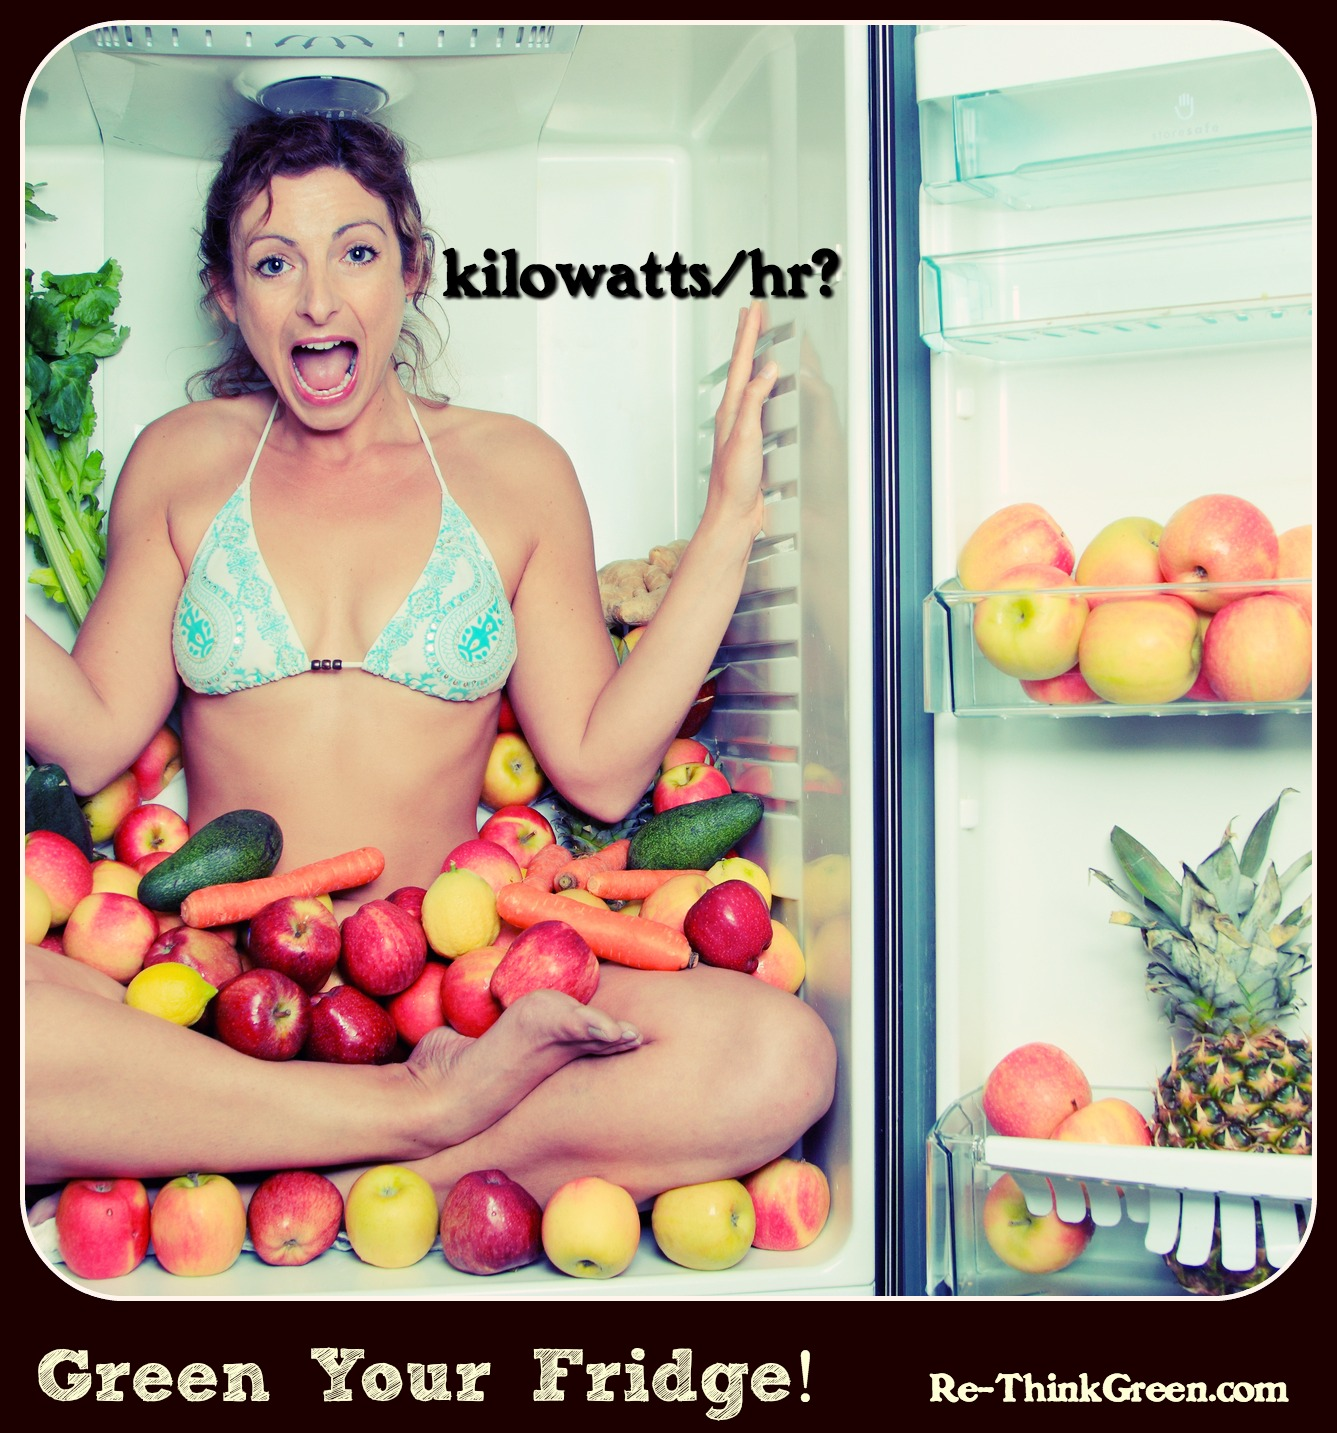 Green your fridge KWh